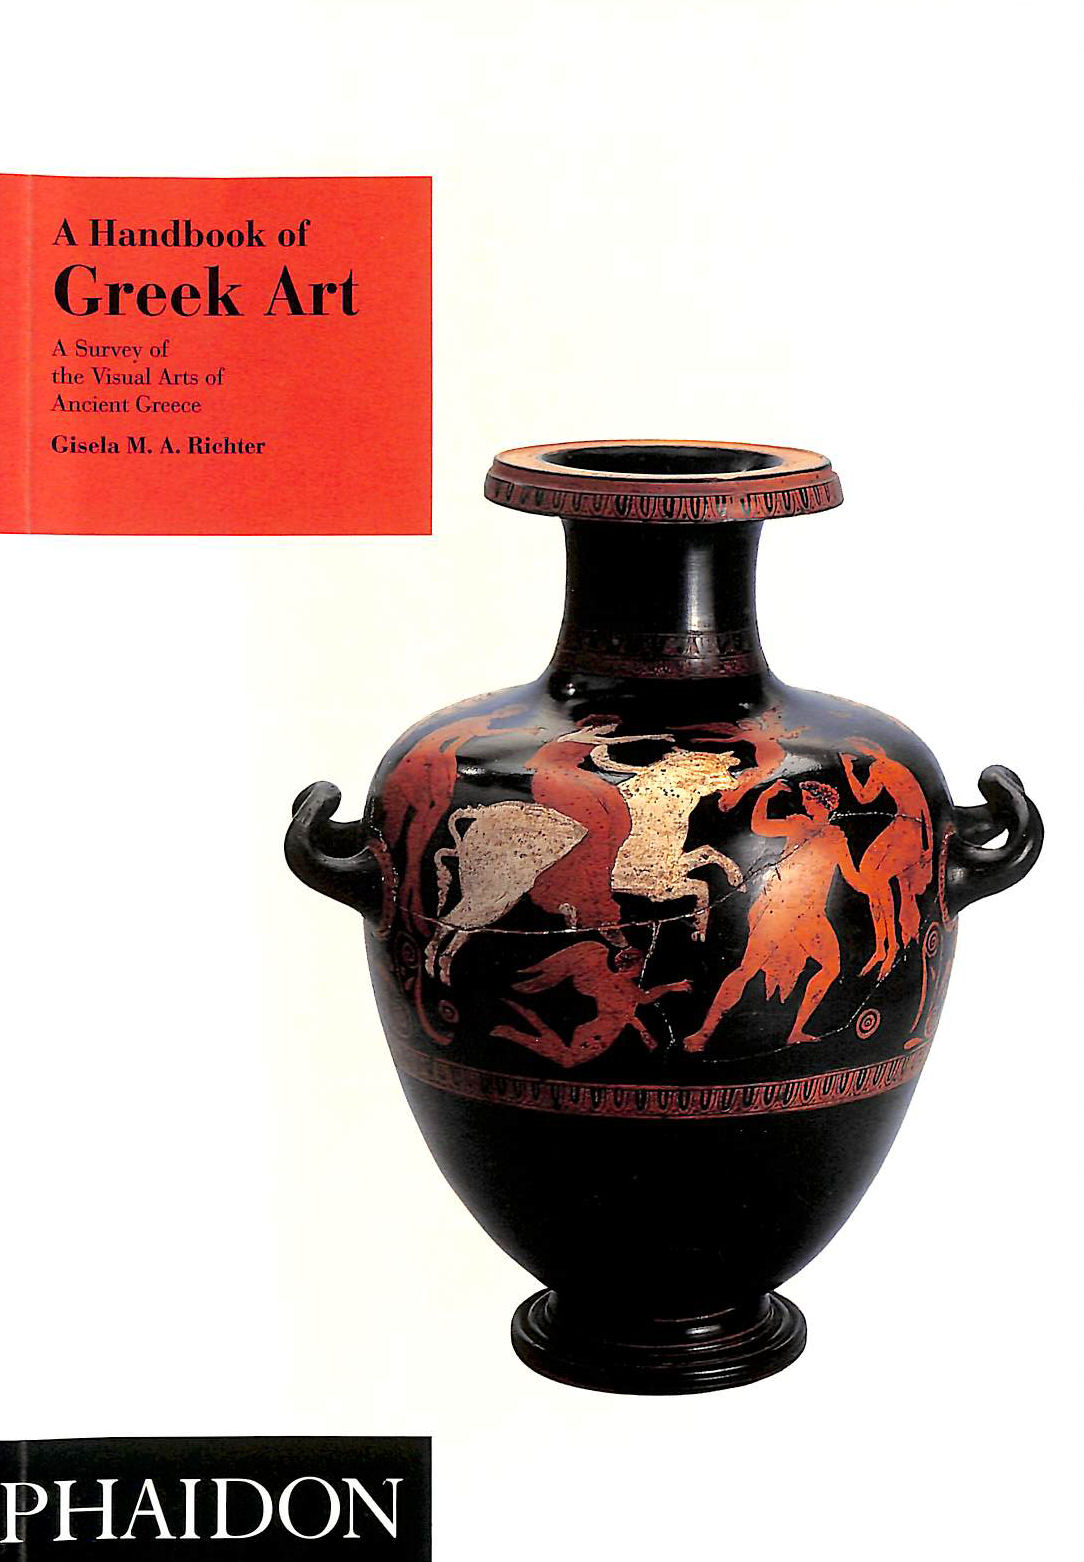 Image for A Handbook of Greek Art: A Survey of the Visual Arts of Ancient Greece